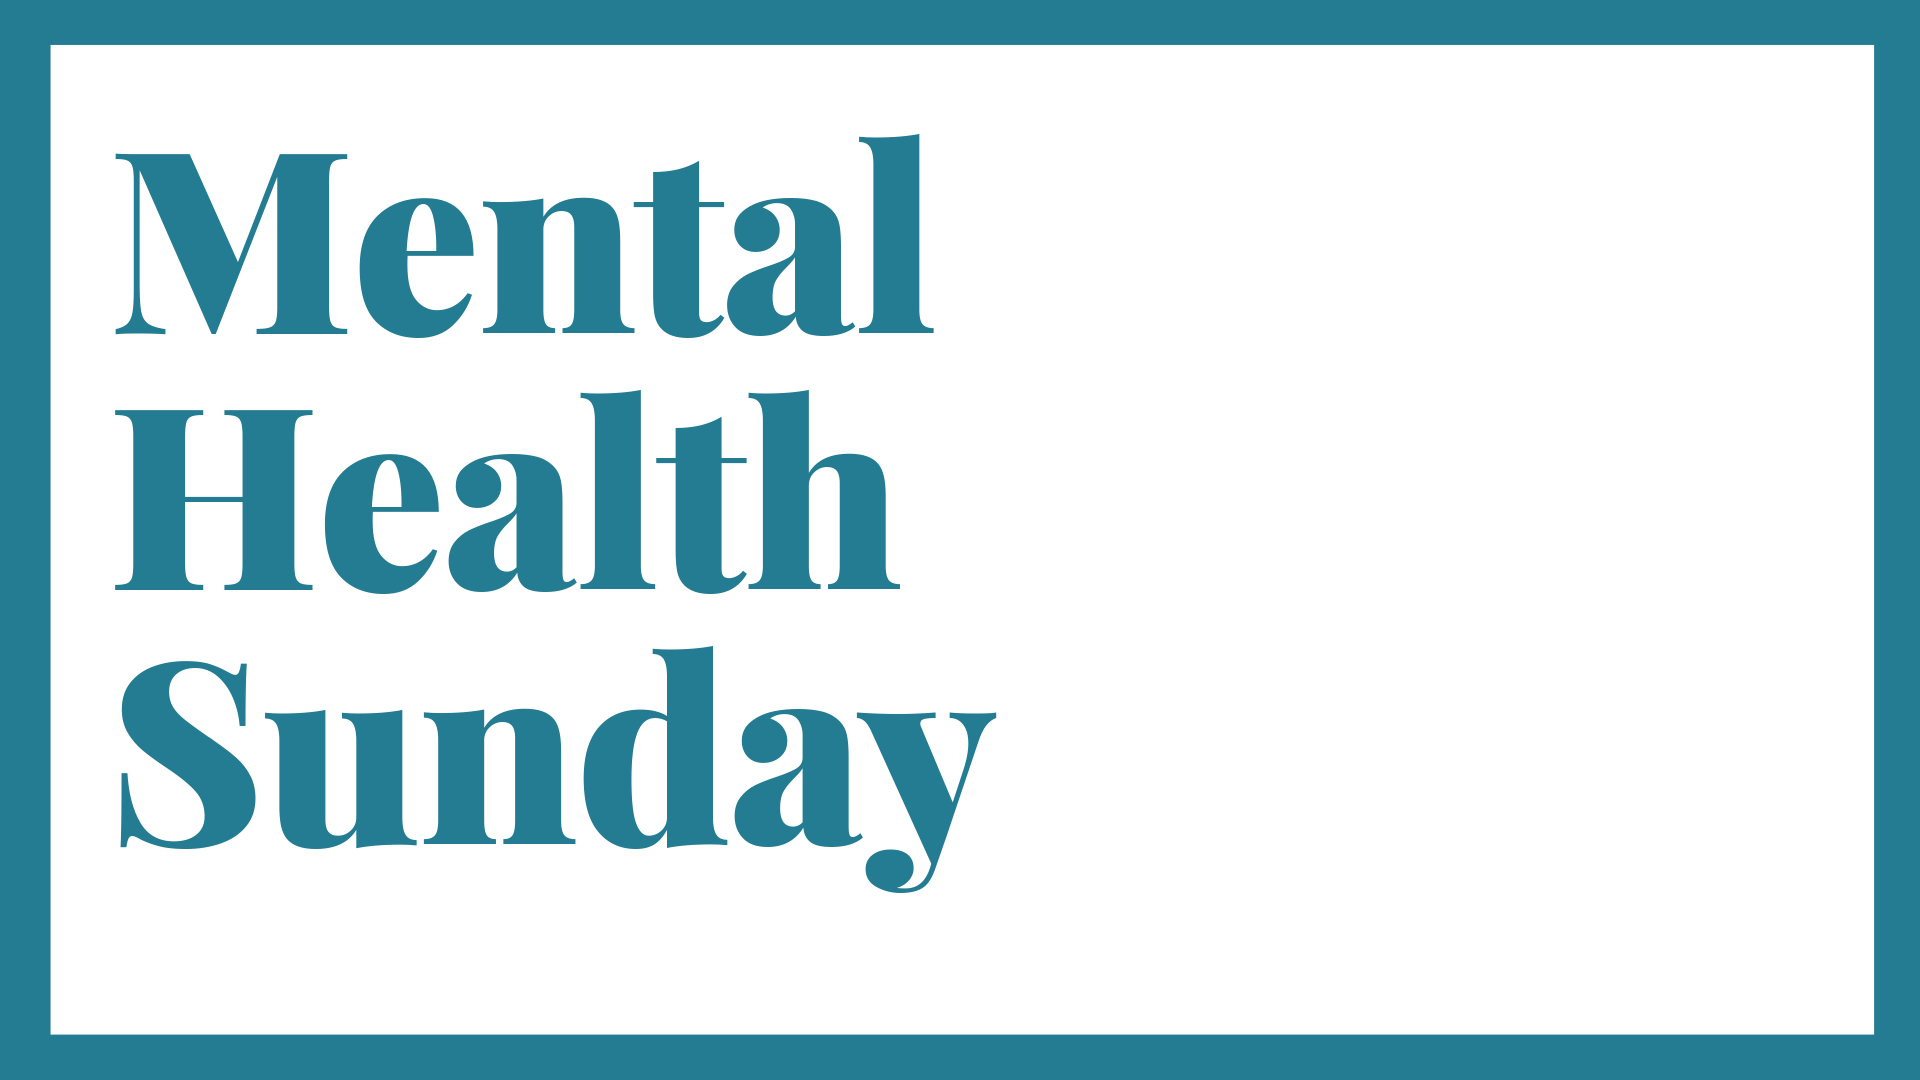 Copy of Mental Health Sunday.png